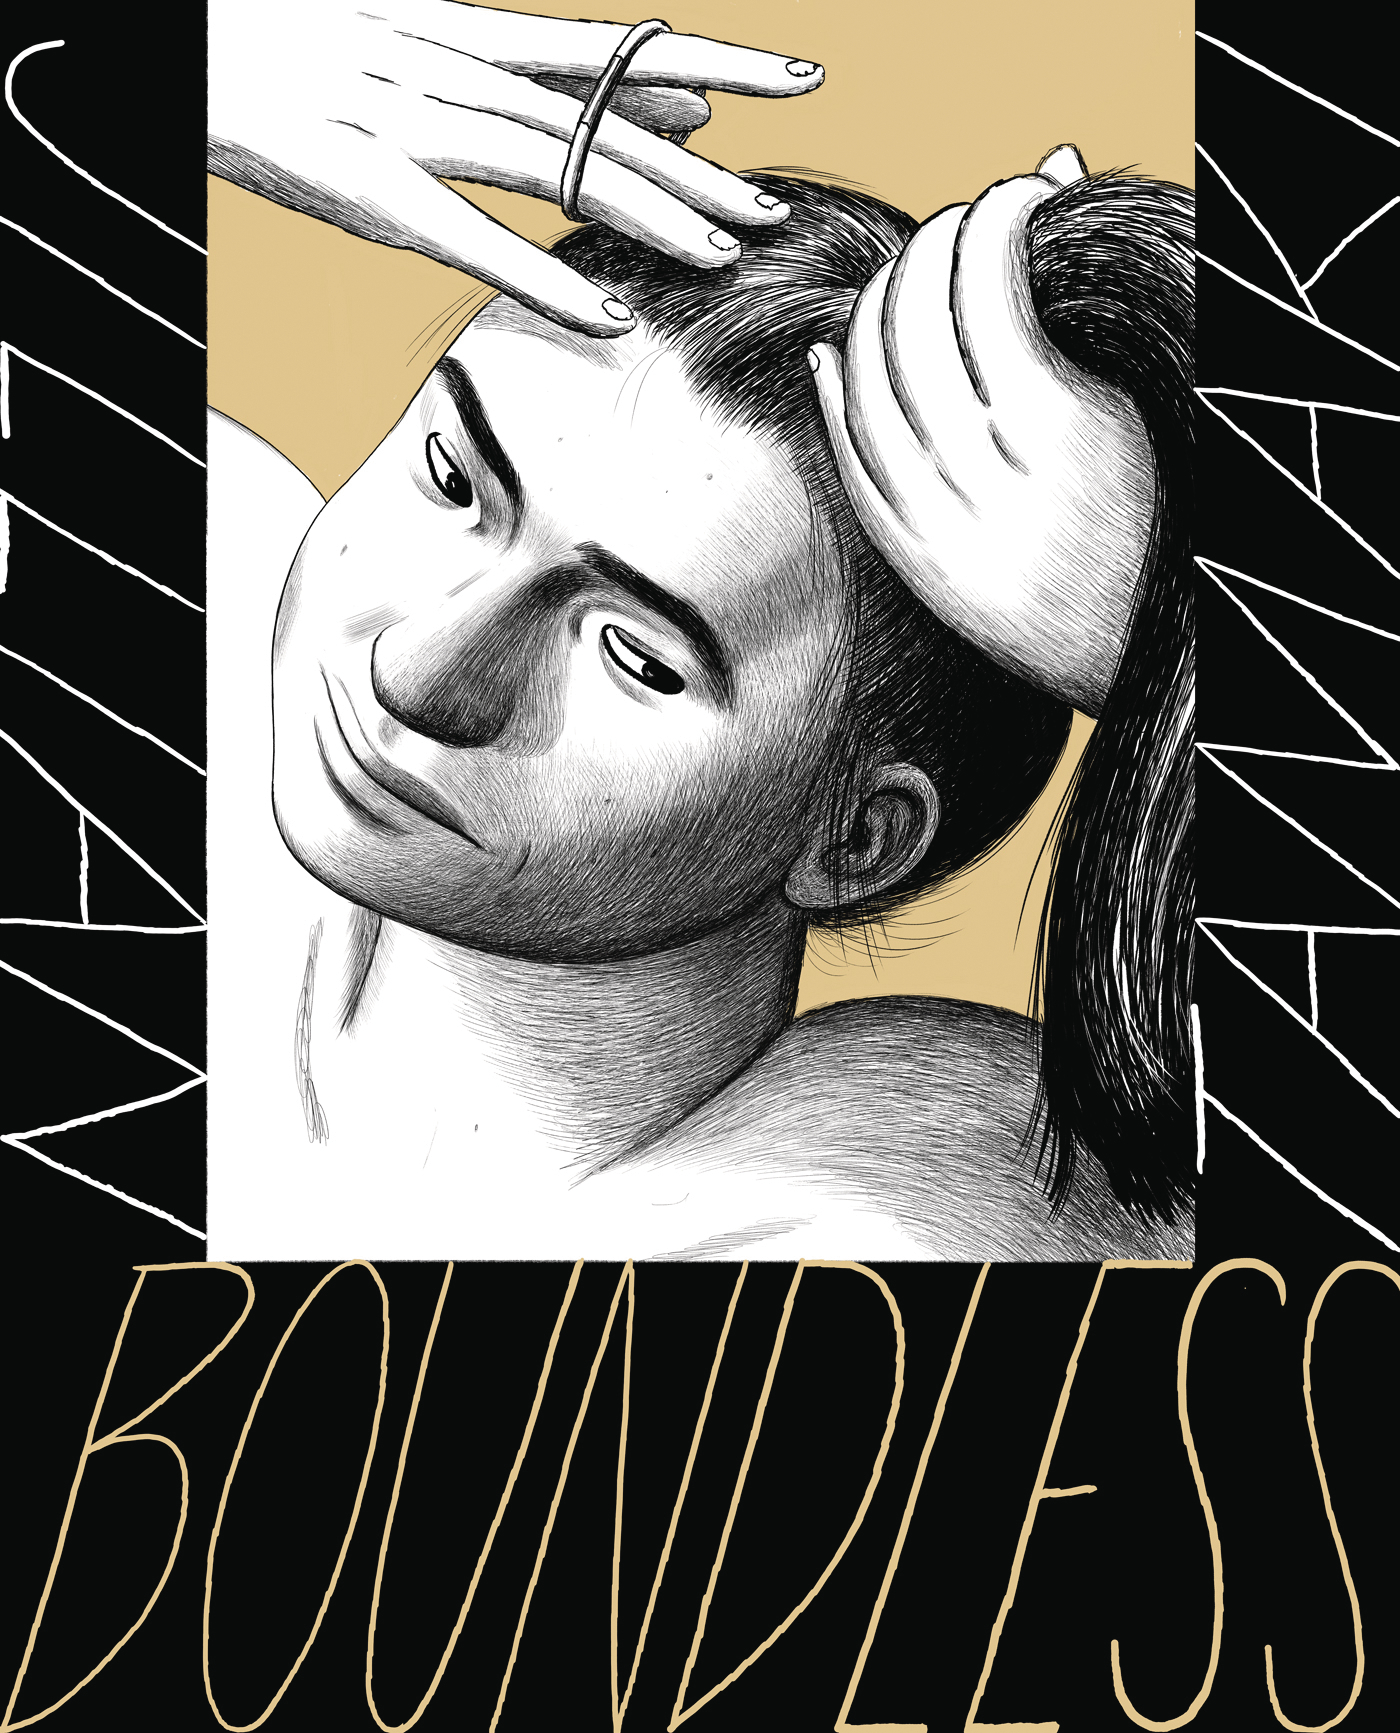 http://www.pastemagazine.com/articles/Boundless%20Cover.jpeg